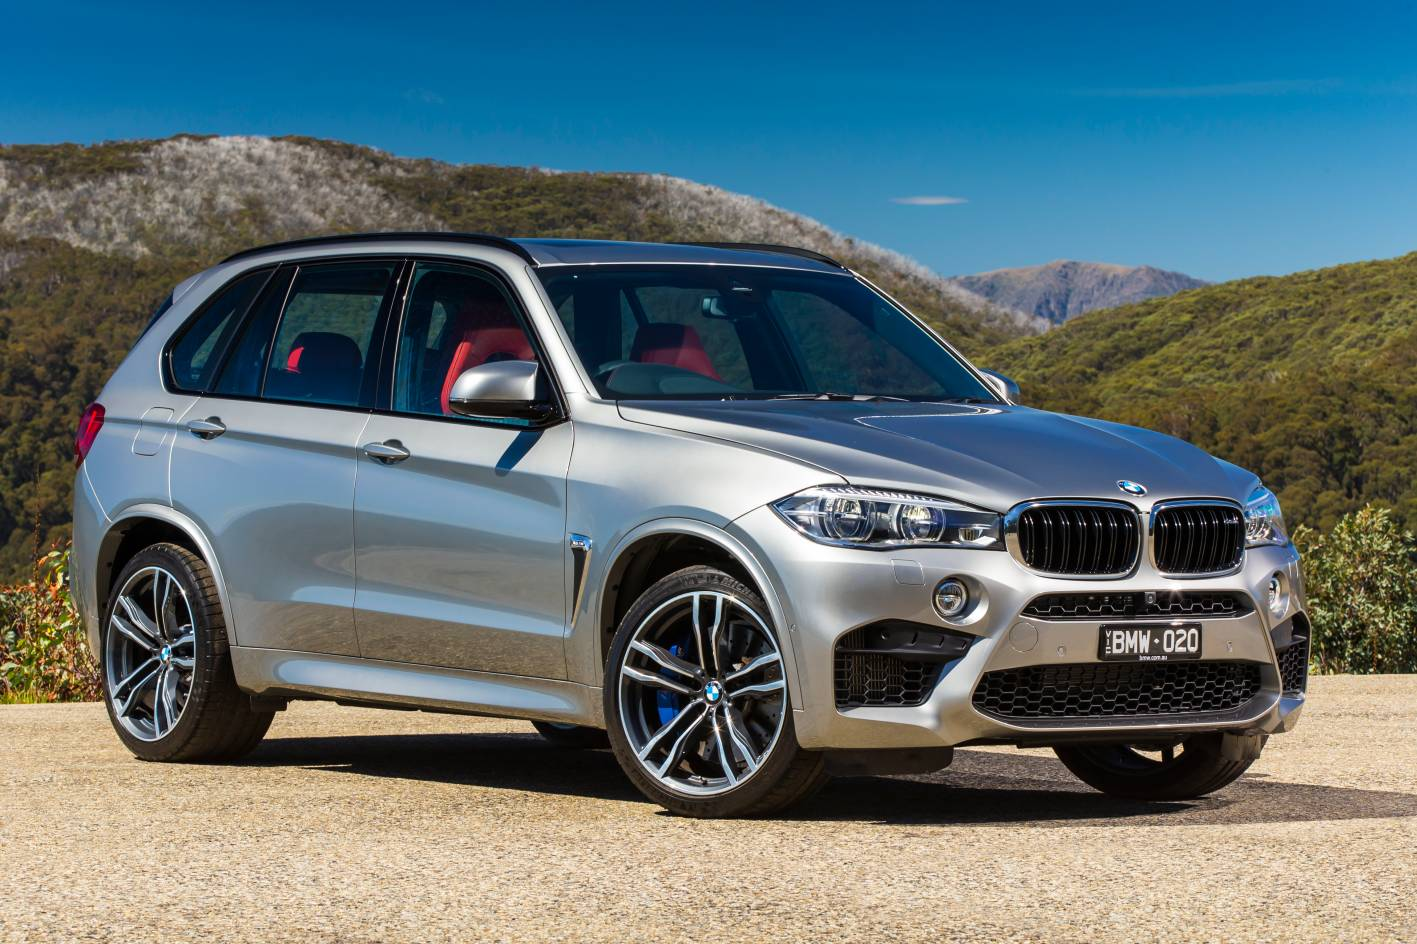 2015 Bmw X5 M And X6 M Arrive In Oz With Stonking 423kw